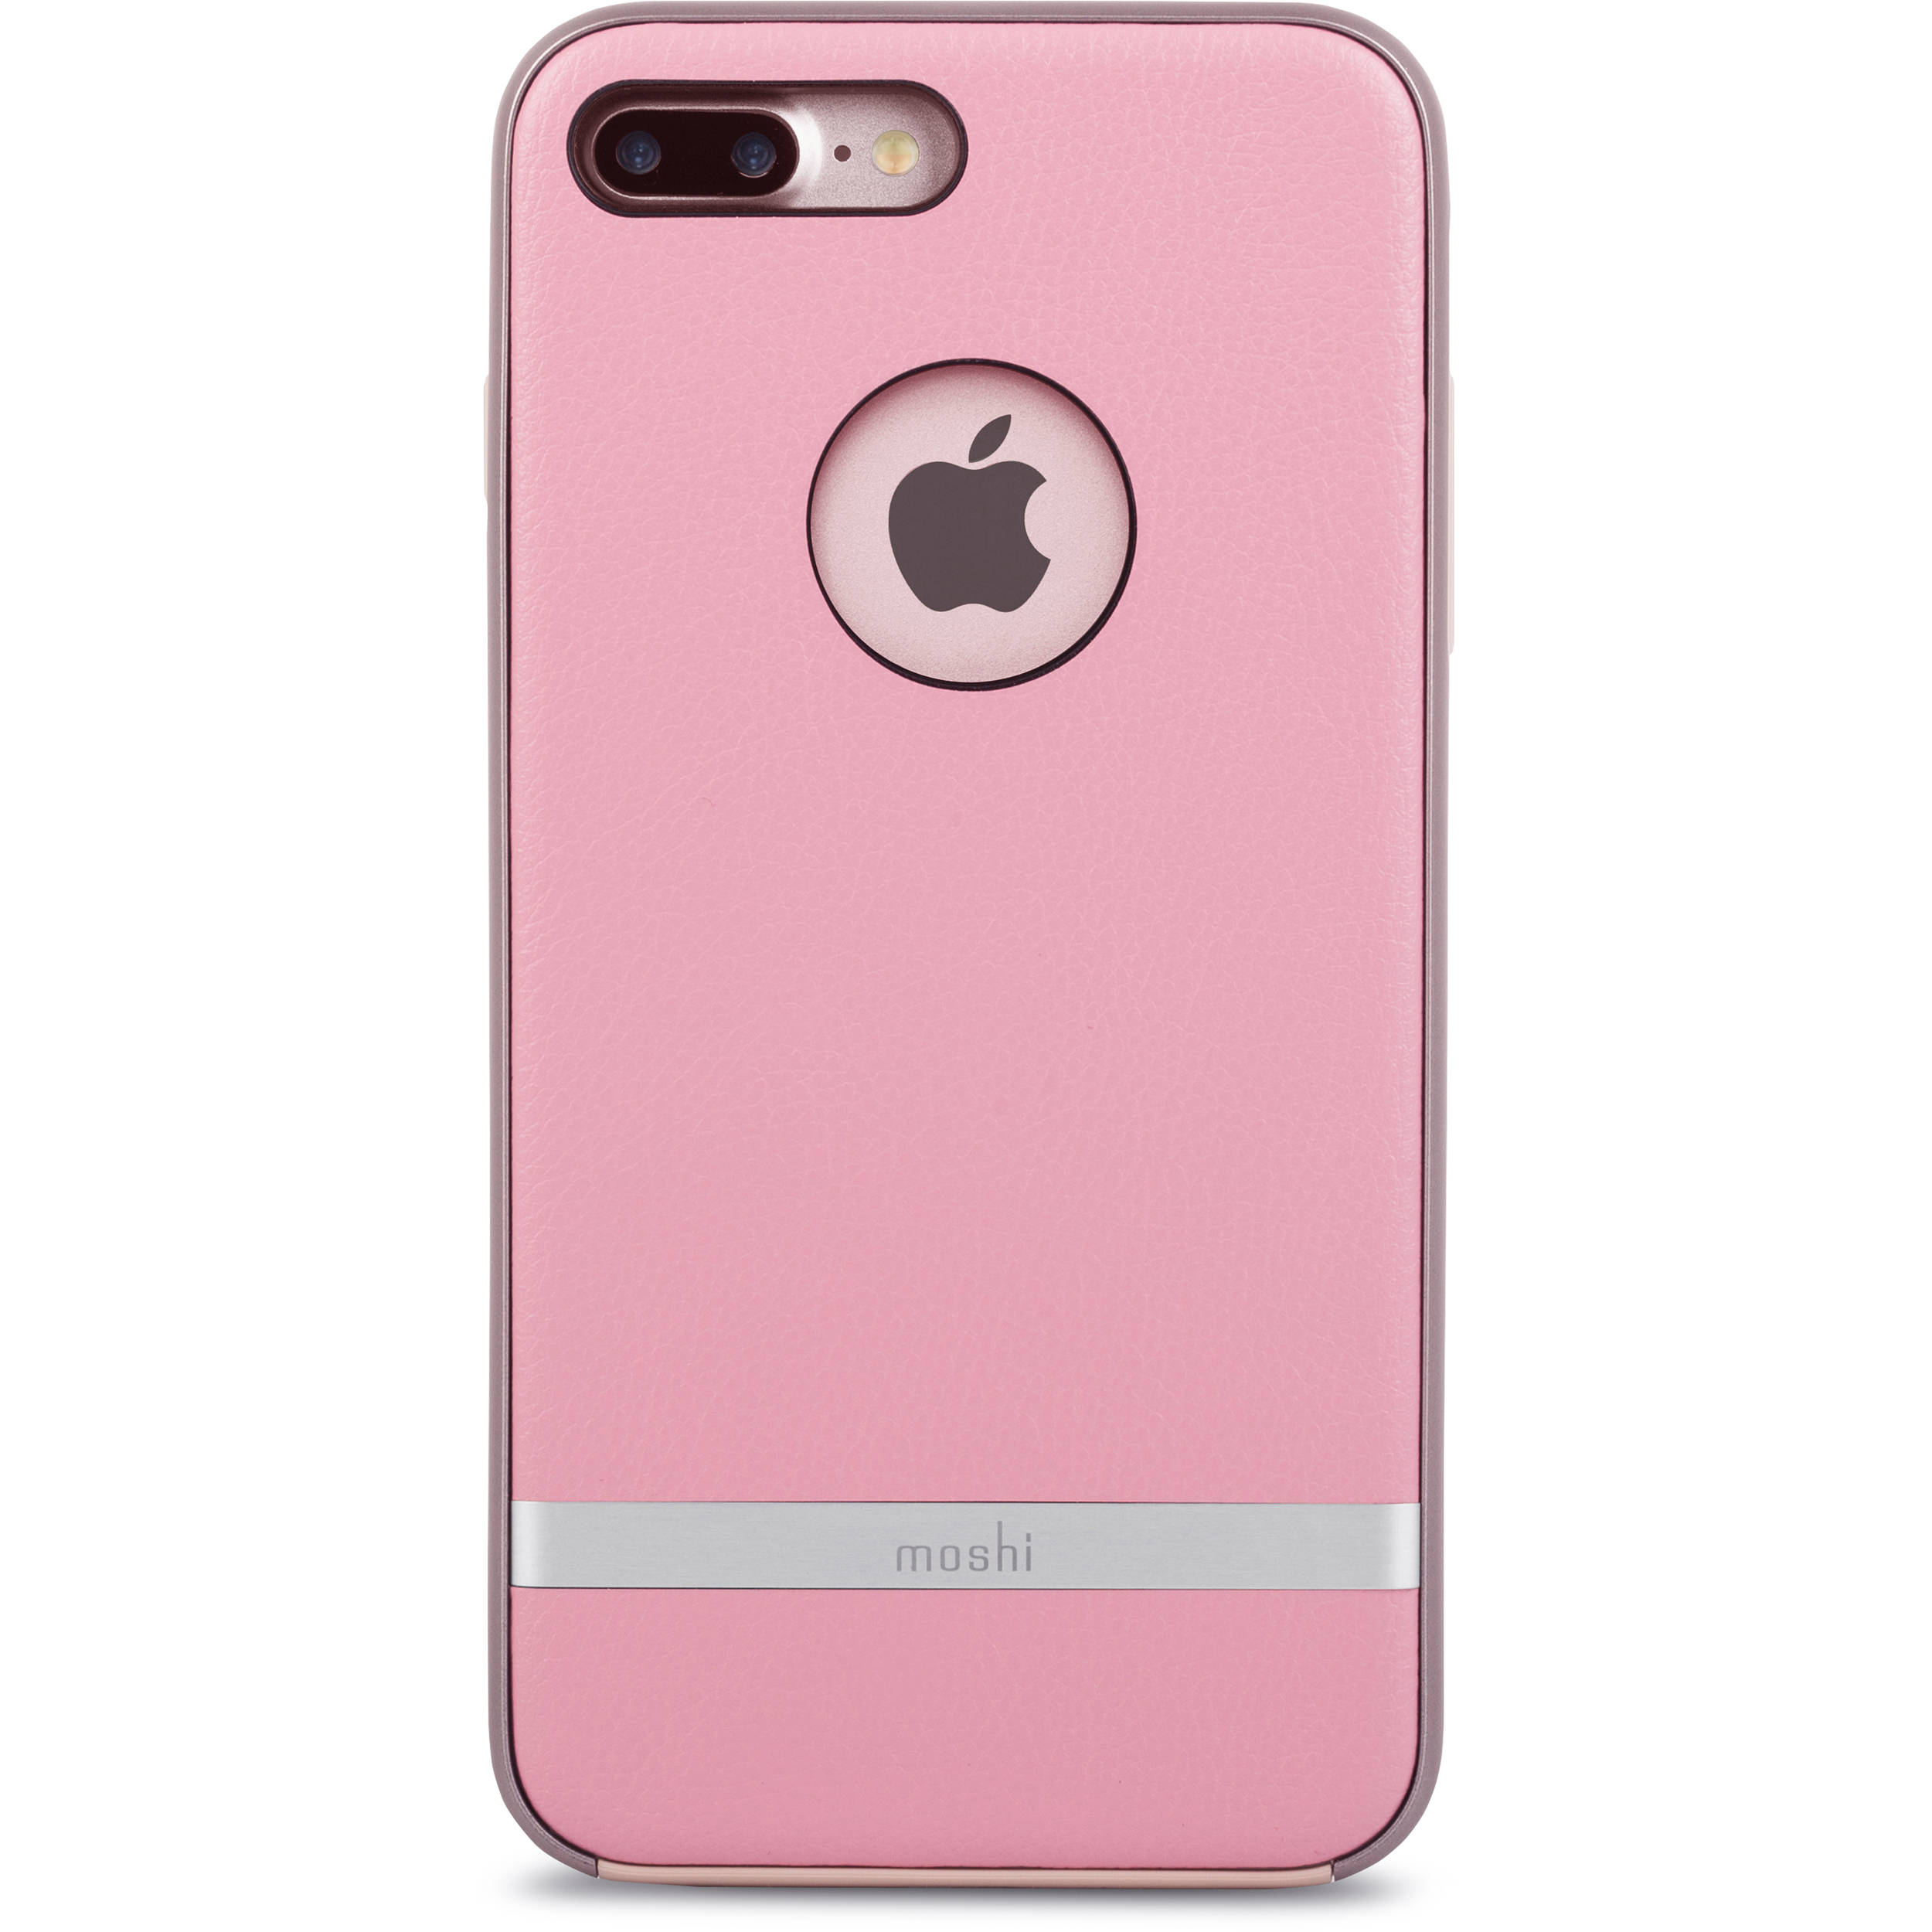 iphone 7 plus. moshi napa case for iphone 7 plus (pink) iphone